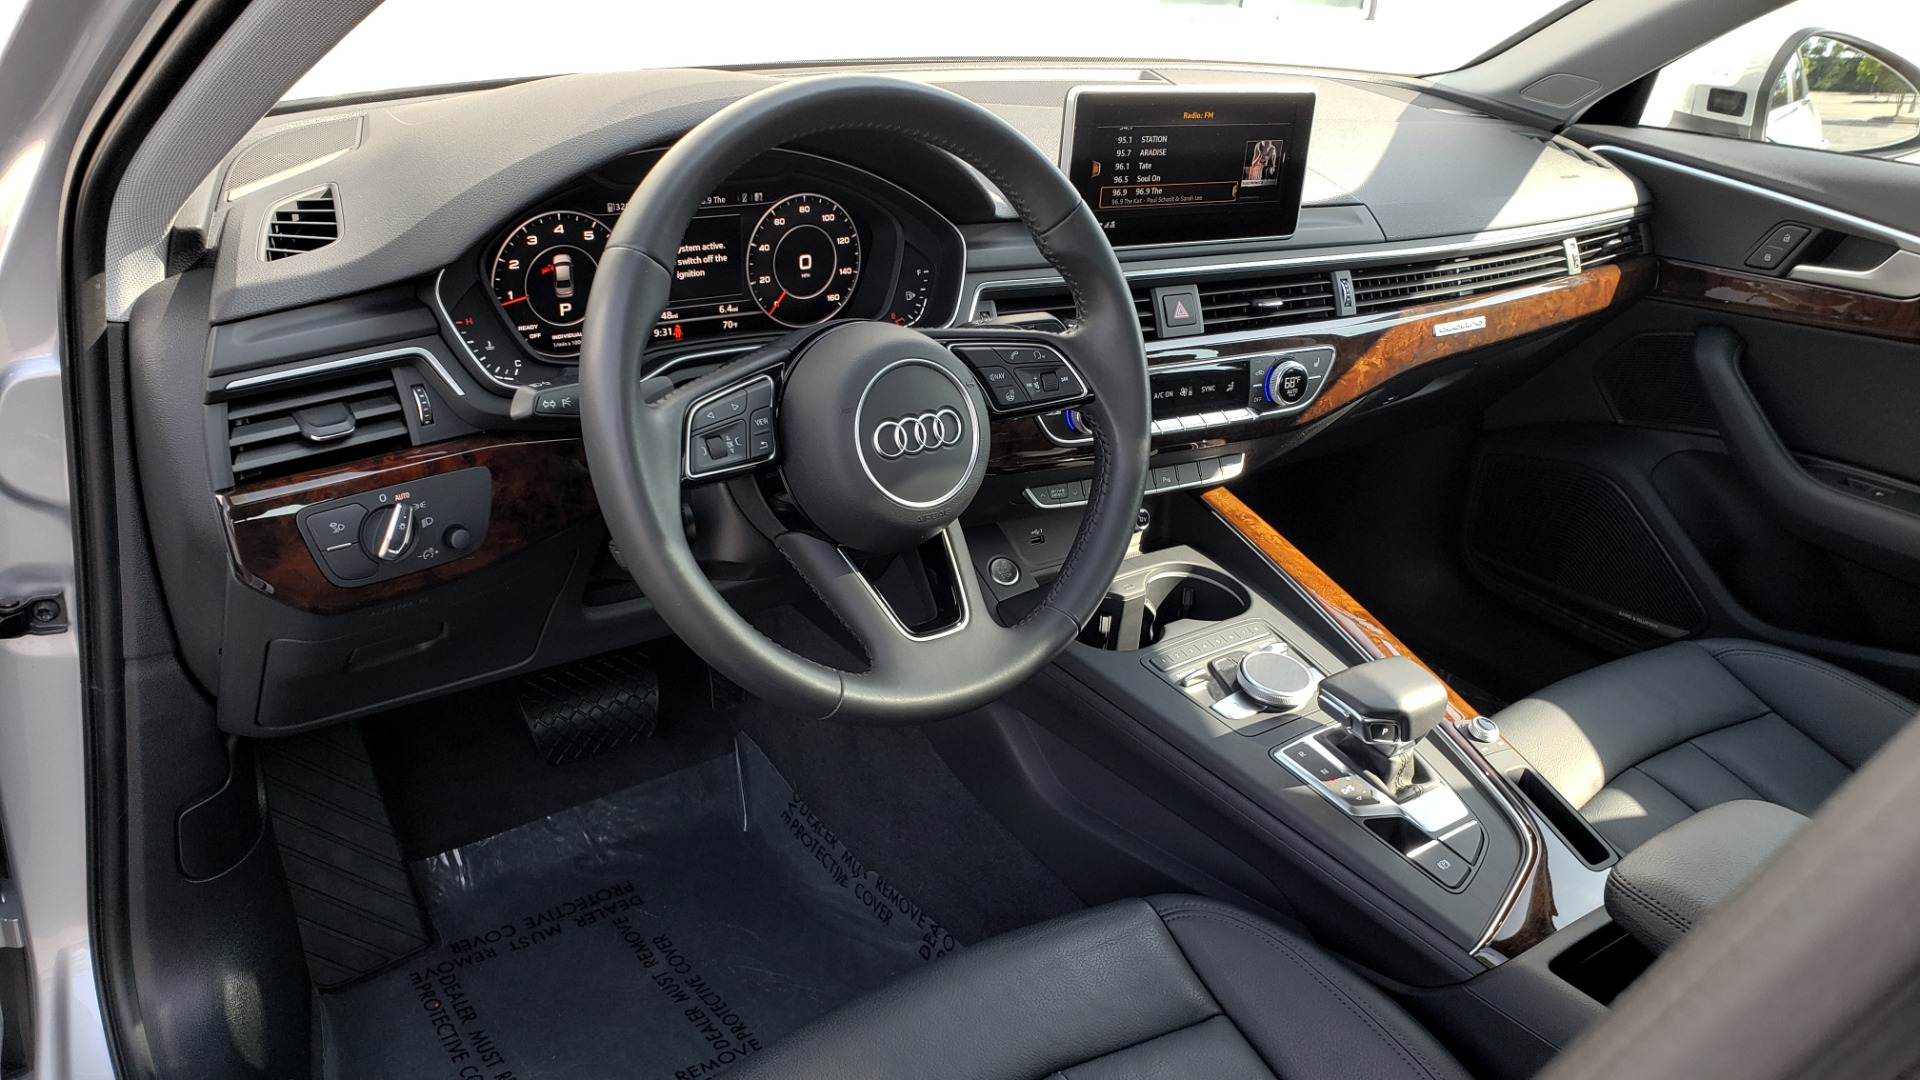 Used 2018 Audi A4 PREMIUM PLUS 2.0T / NAV / SUNROOF / B&O SND / CLD WTHR / REARVIEW for sale $29,395 at Formula Imports in Charlotte NC 28227 37